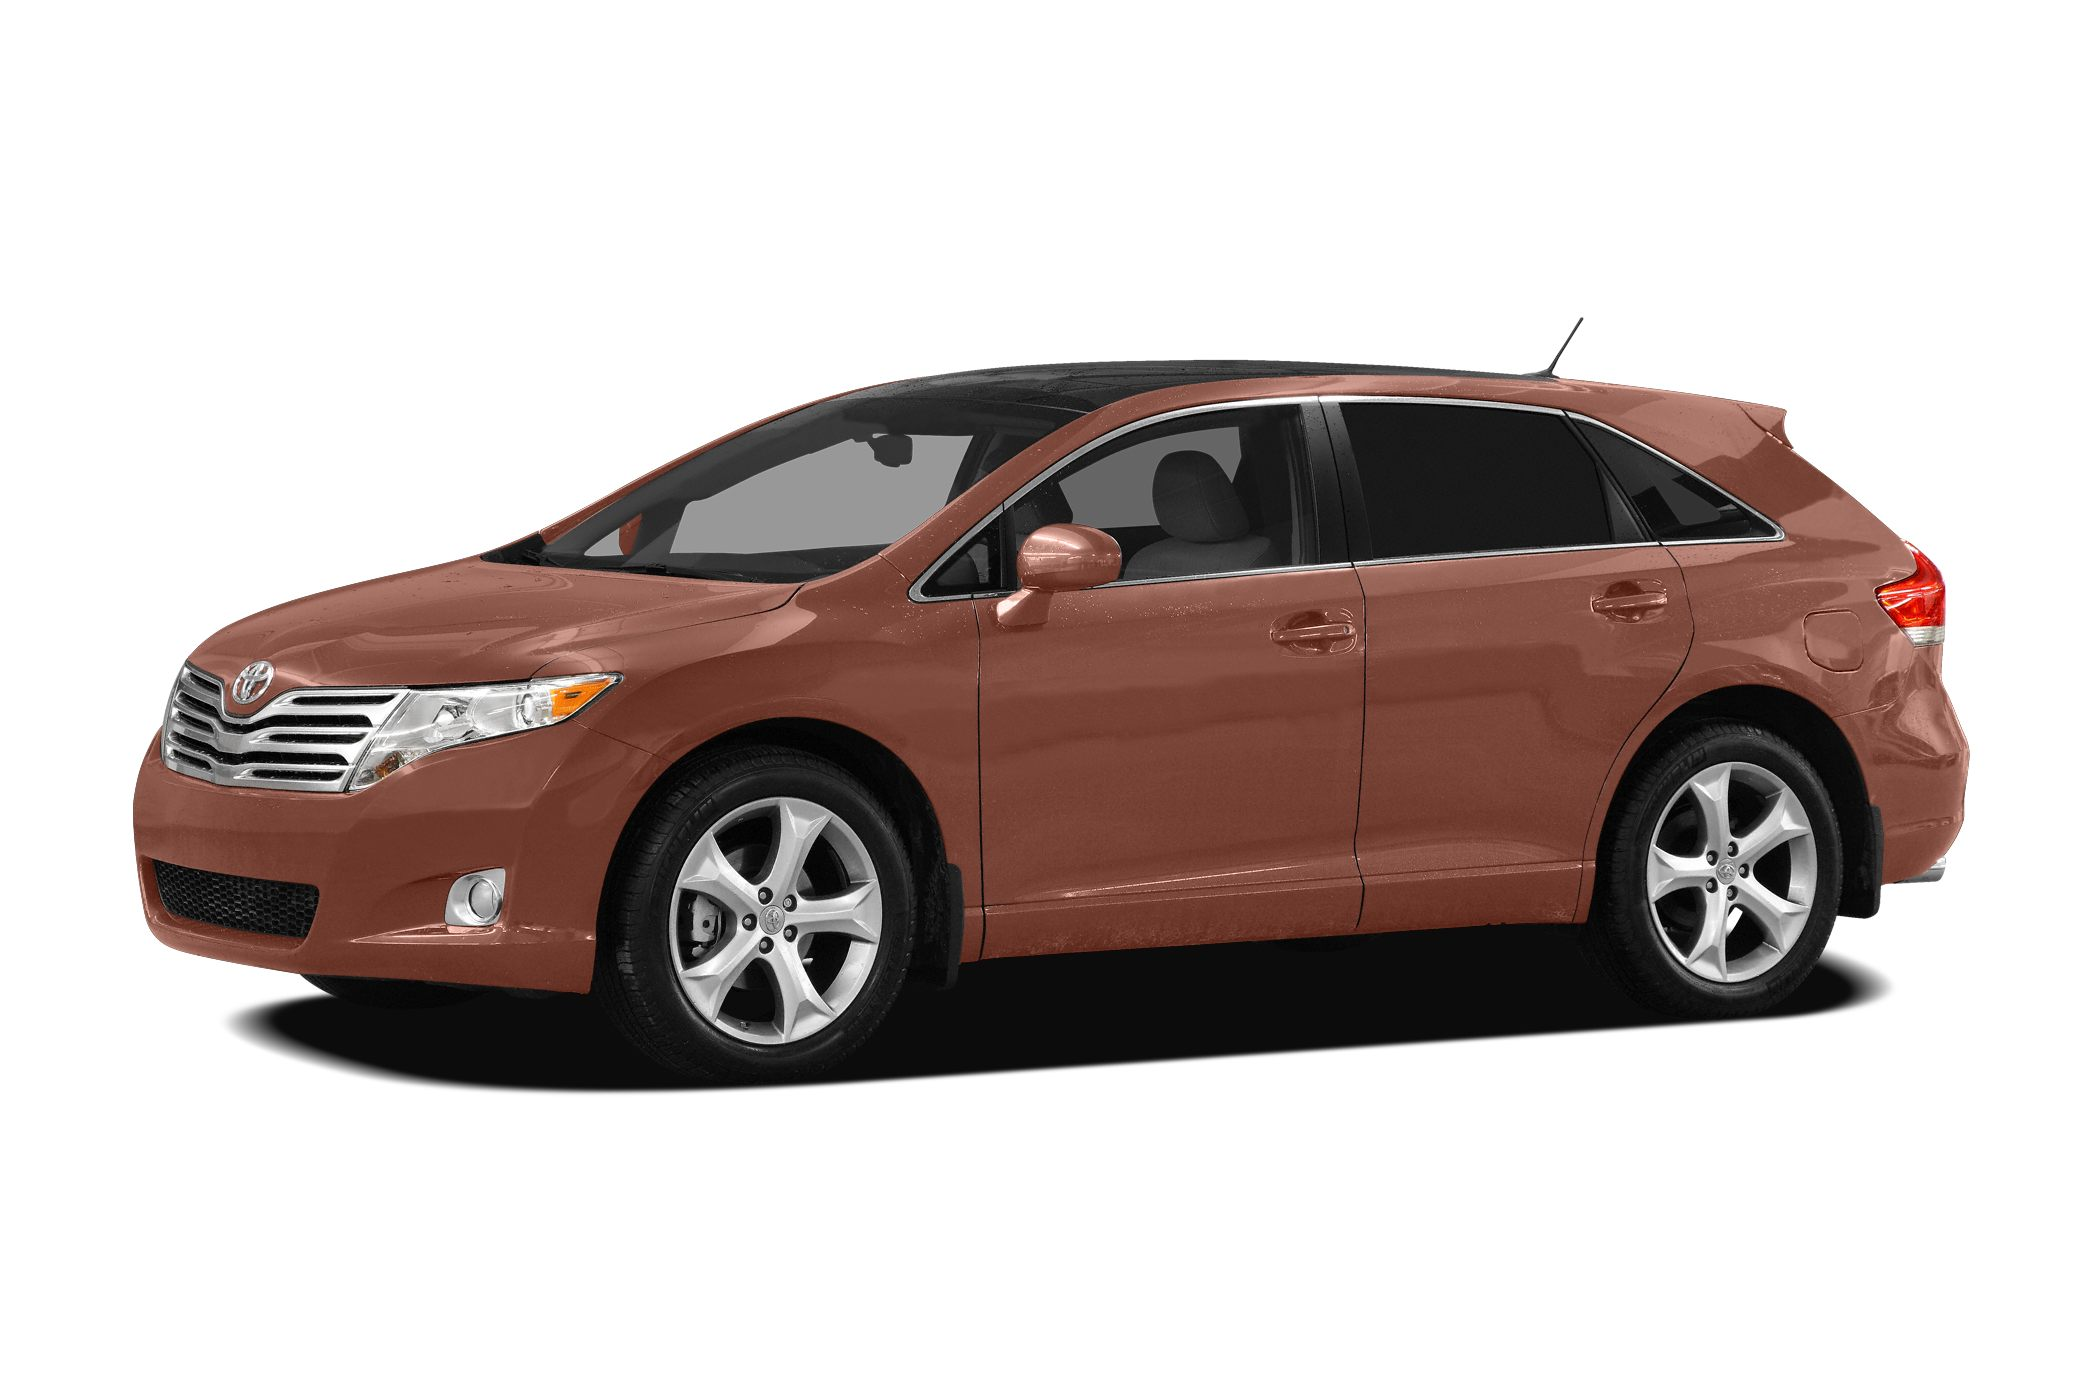 2009 Toyota Venza Base 2009 Toyota Venza local trade-in 1 owner Price to Mooove come on in and